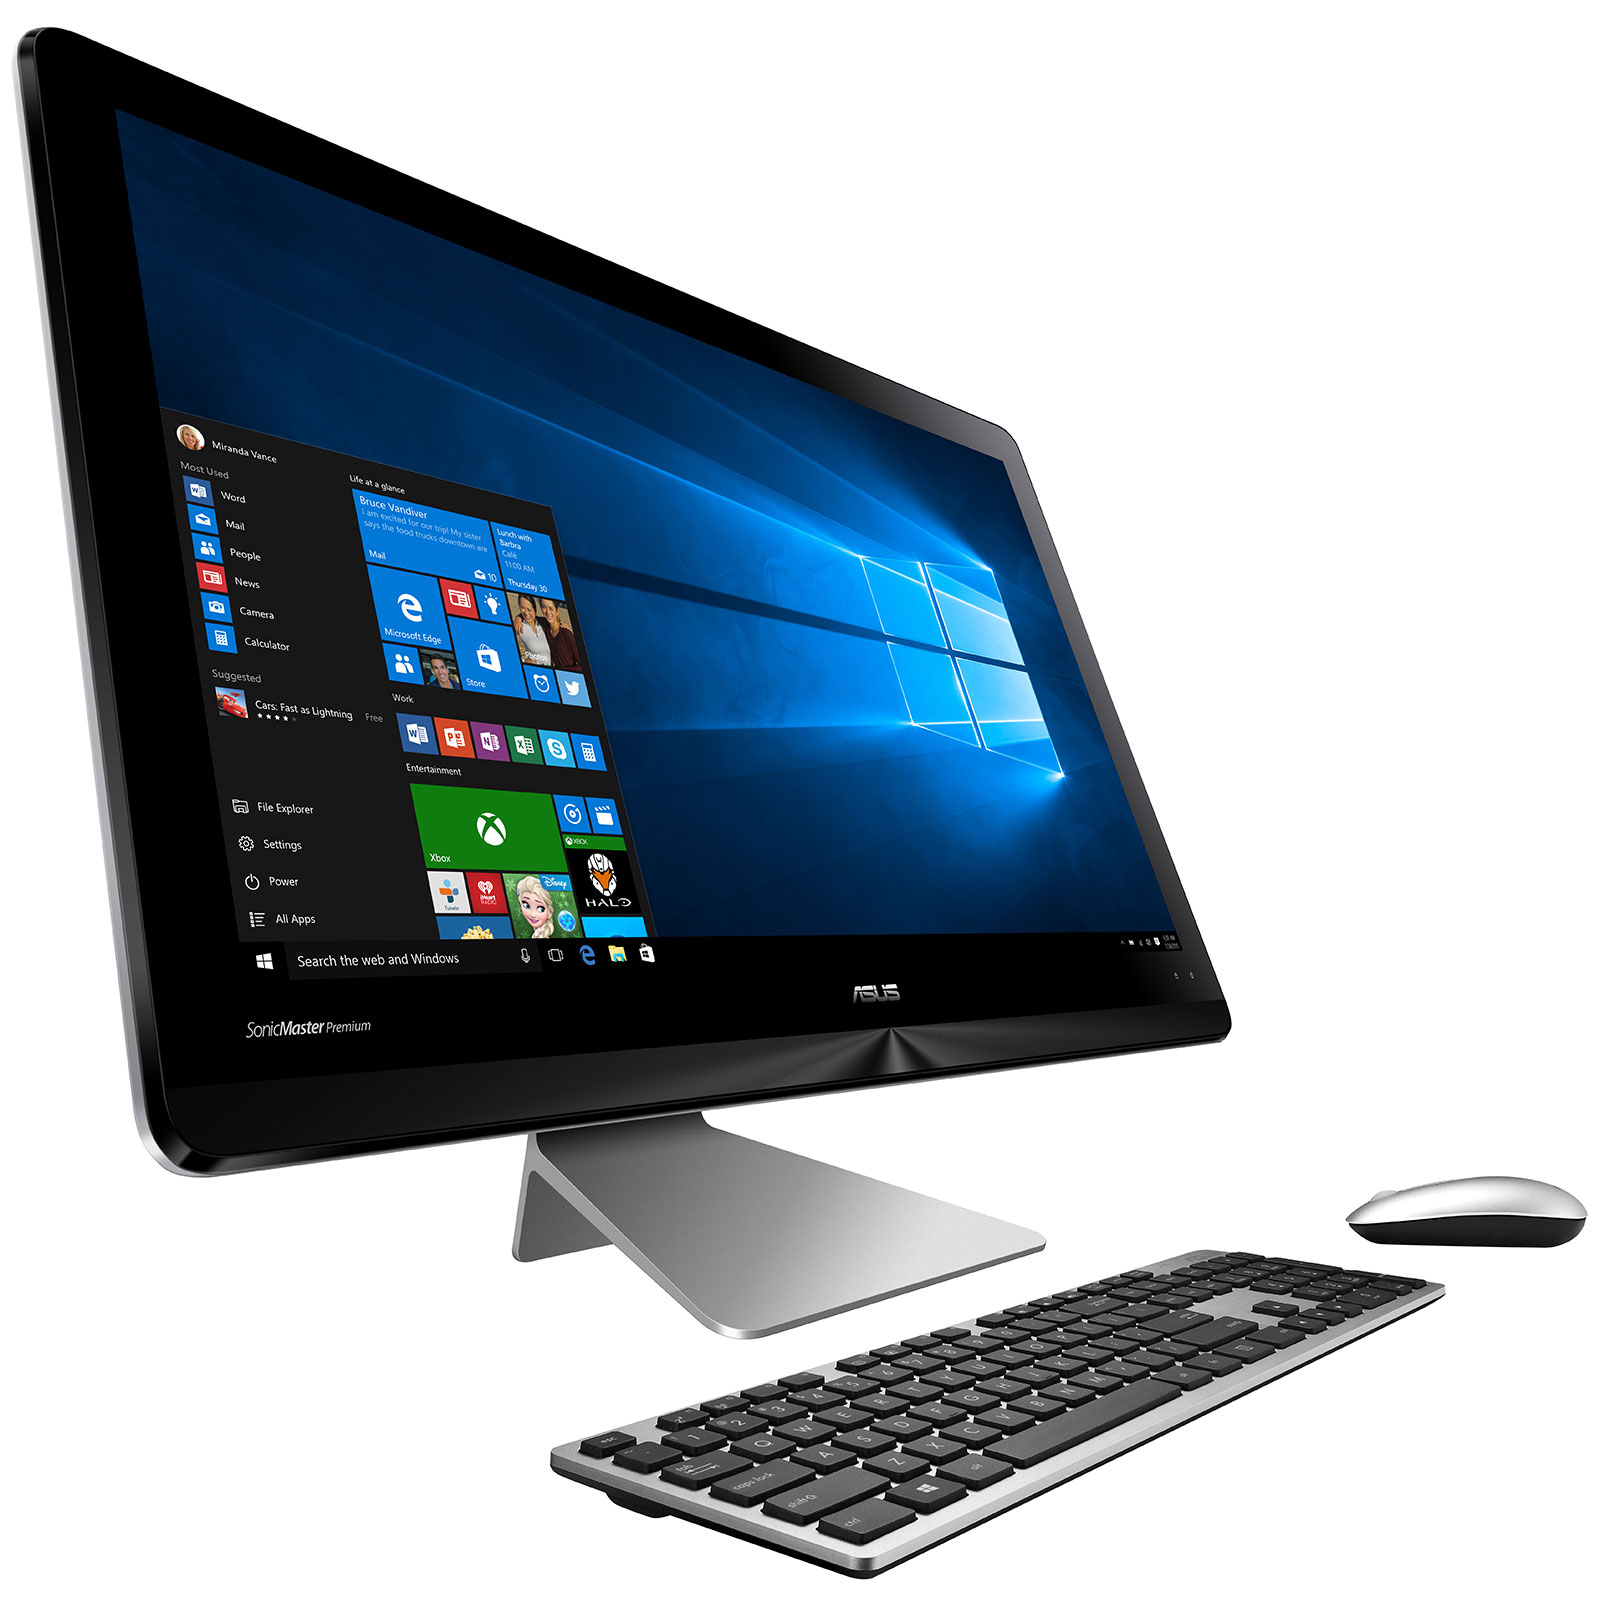 Asus zen aio zn241icuk ra016t pc de bureau asus sur - Ordinateur de bureau windows 7 pro ...